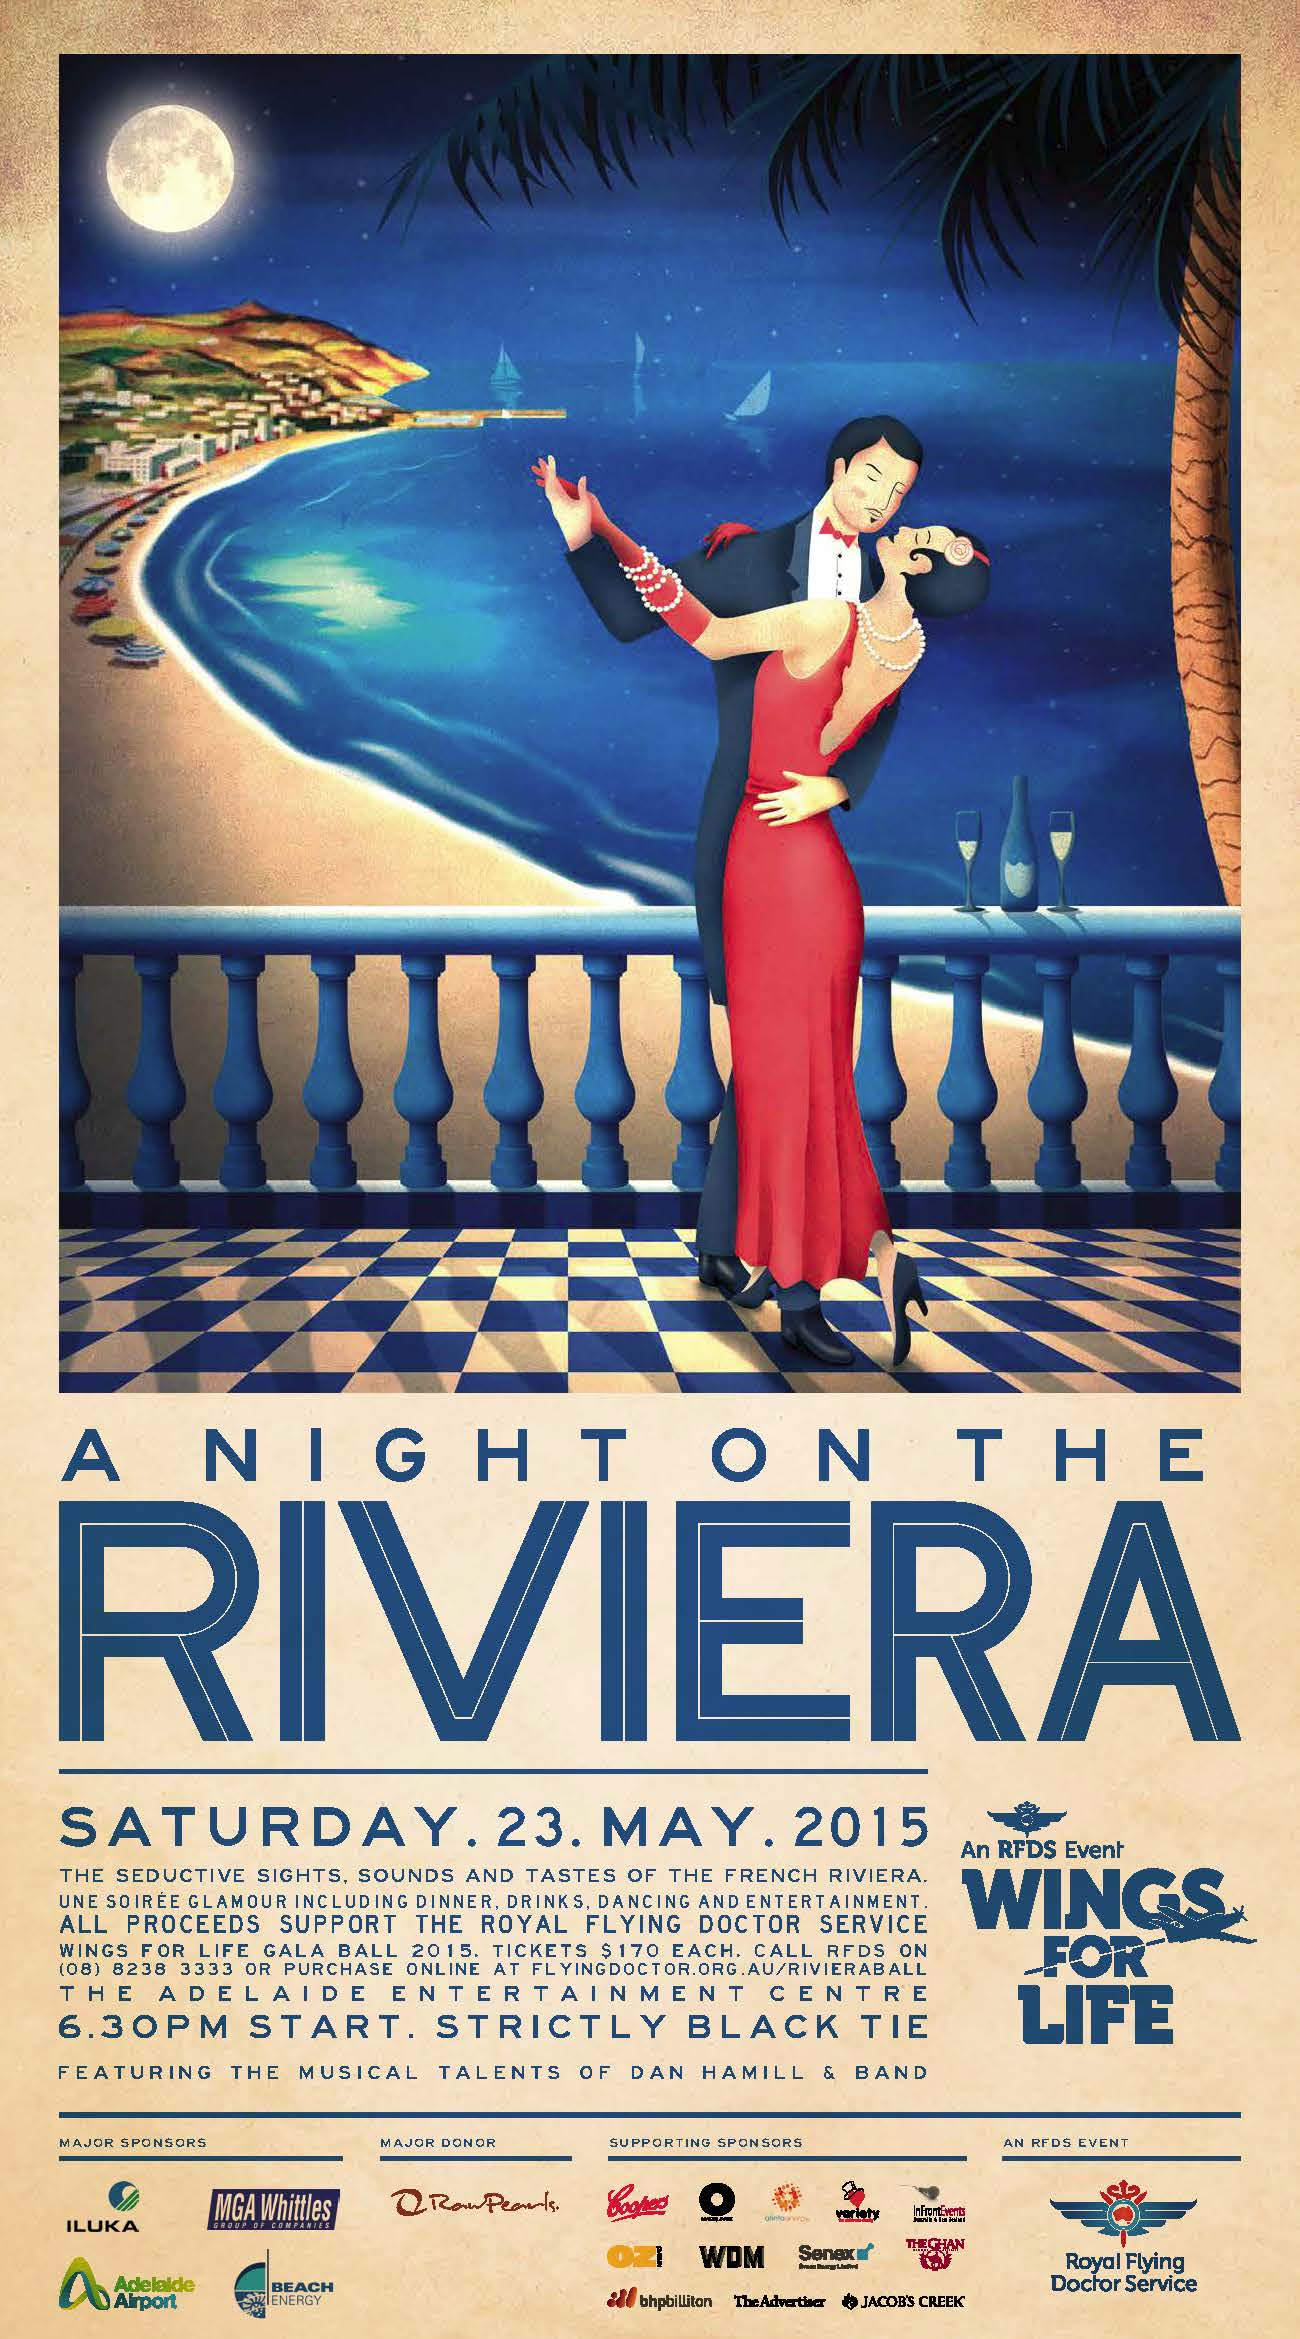 150209_Events_WFL Ball 2015_A2 Poster_The Riviera Ball_FINAL.jpg